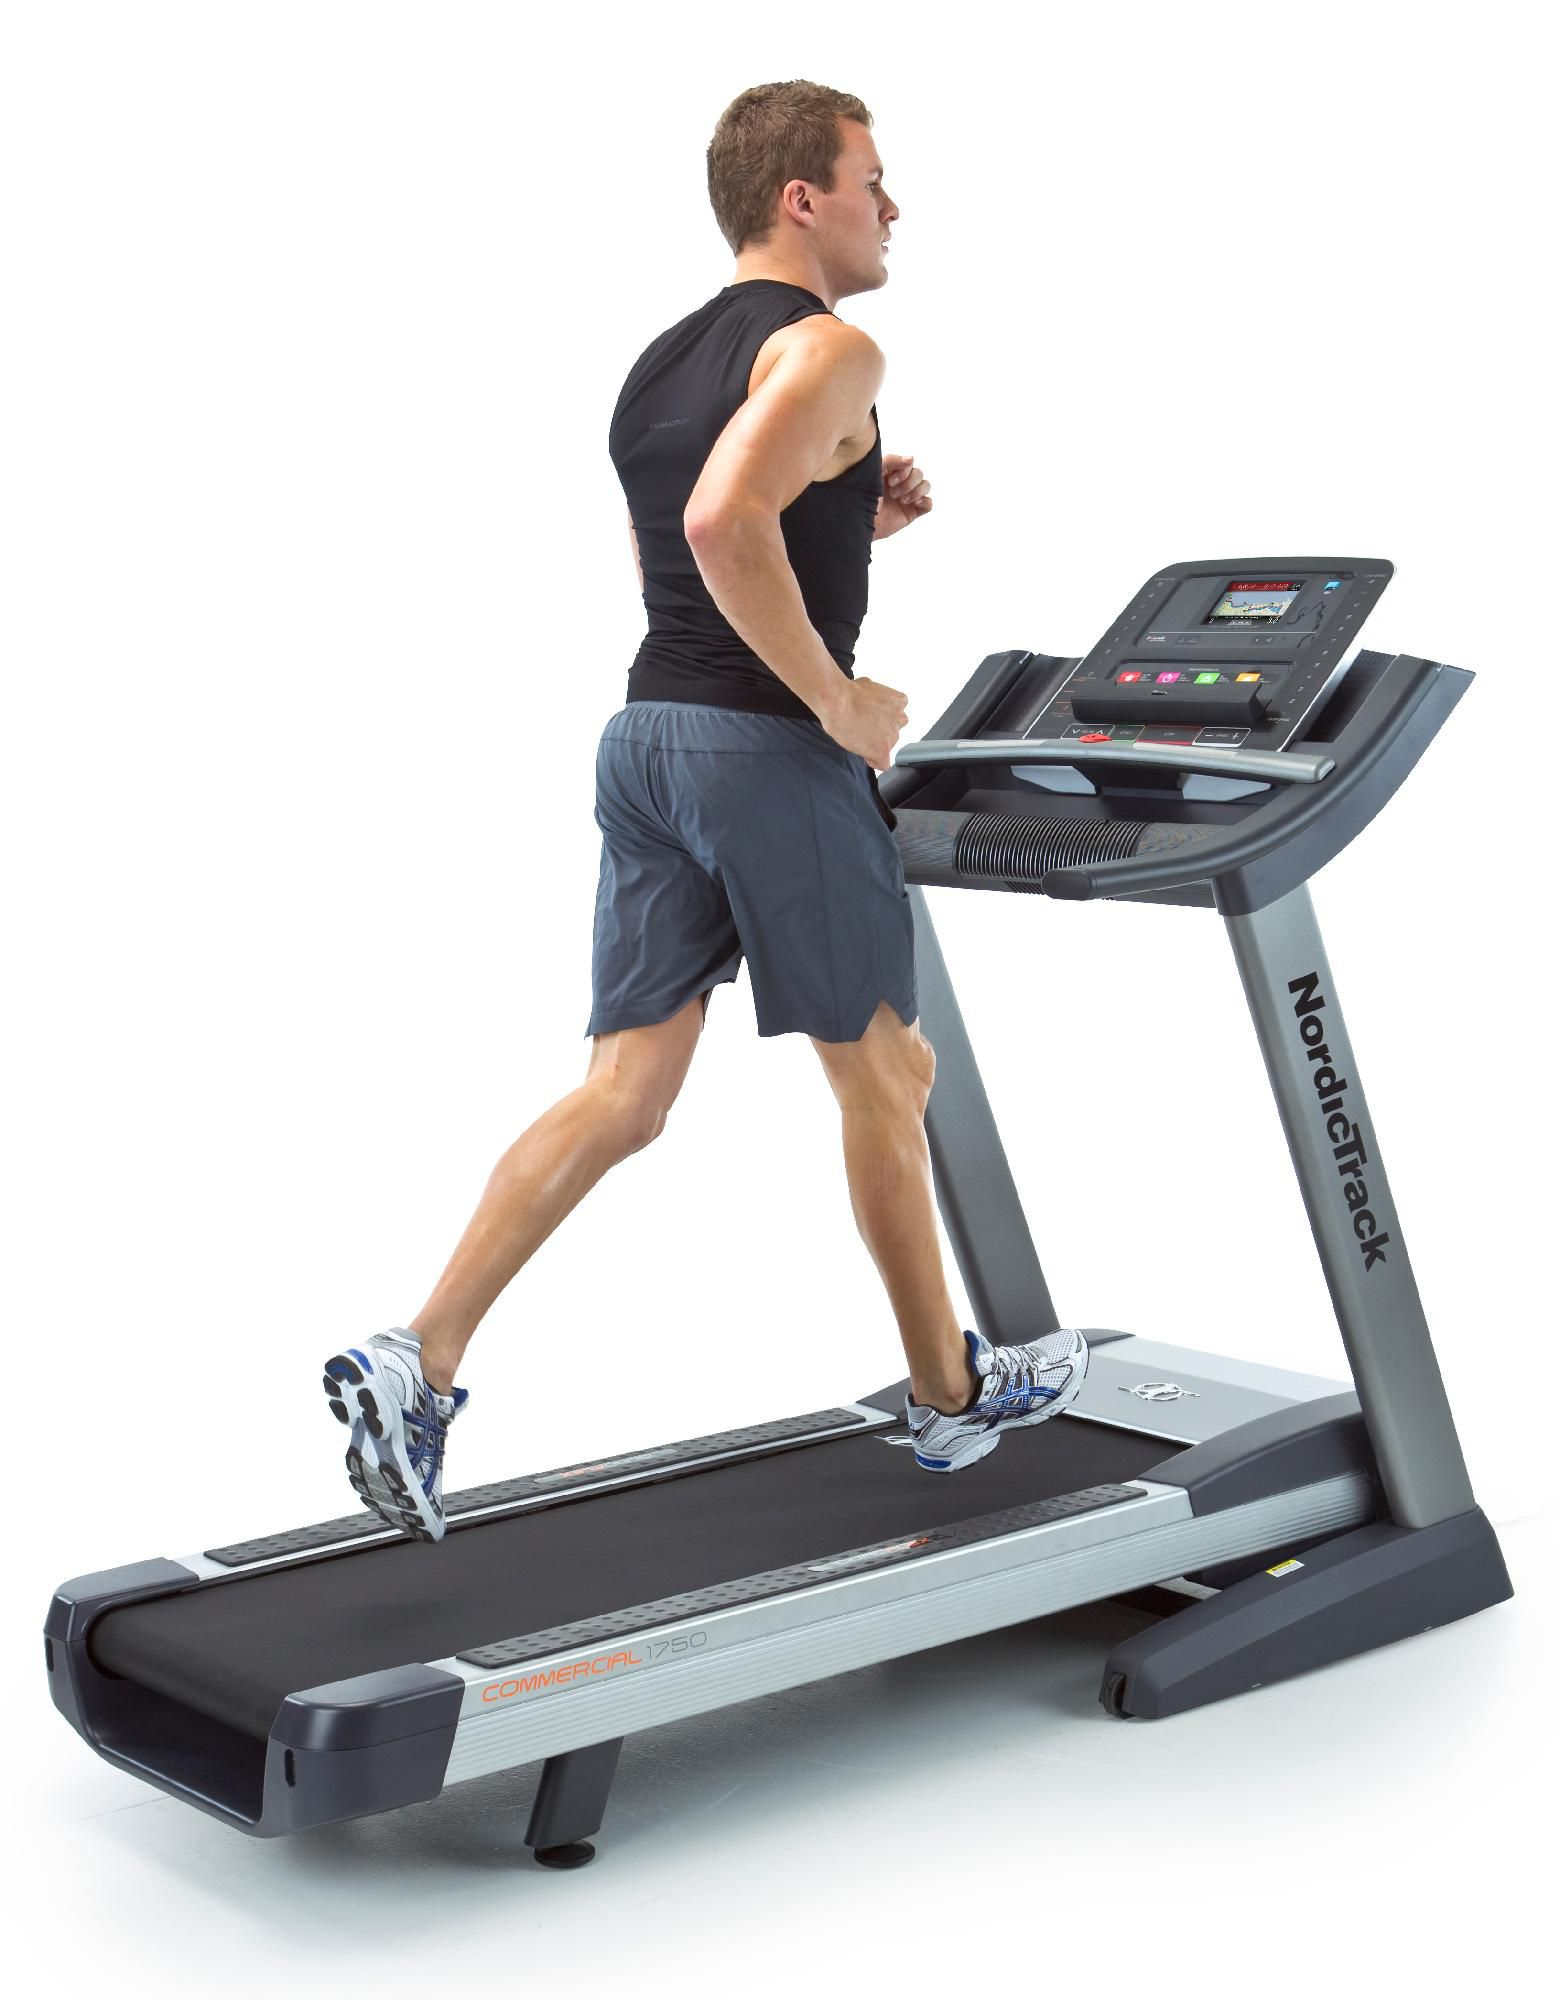 NordicTrack 1750 Commercial-Grade Treadmill